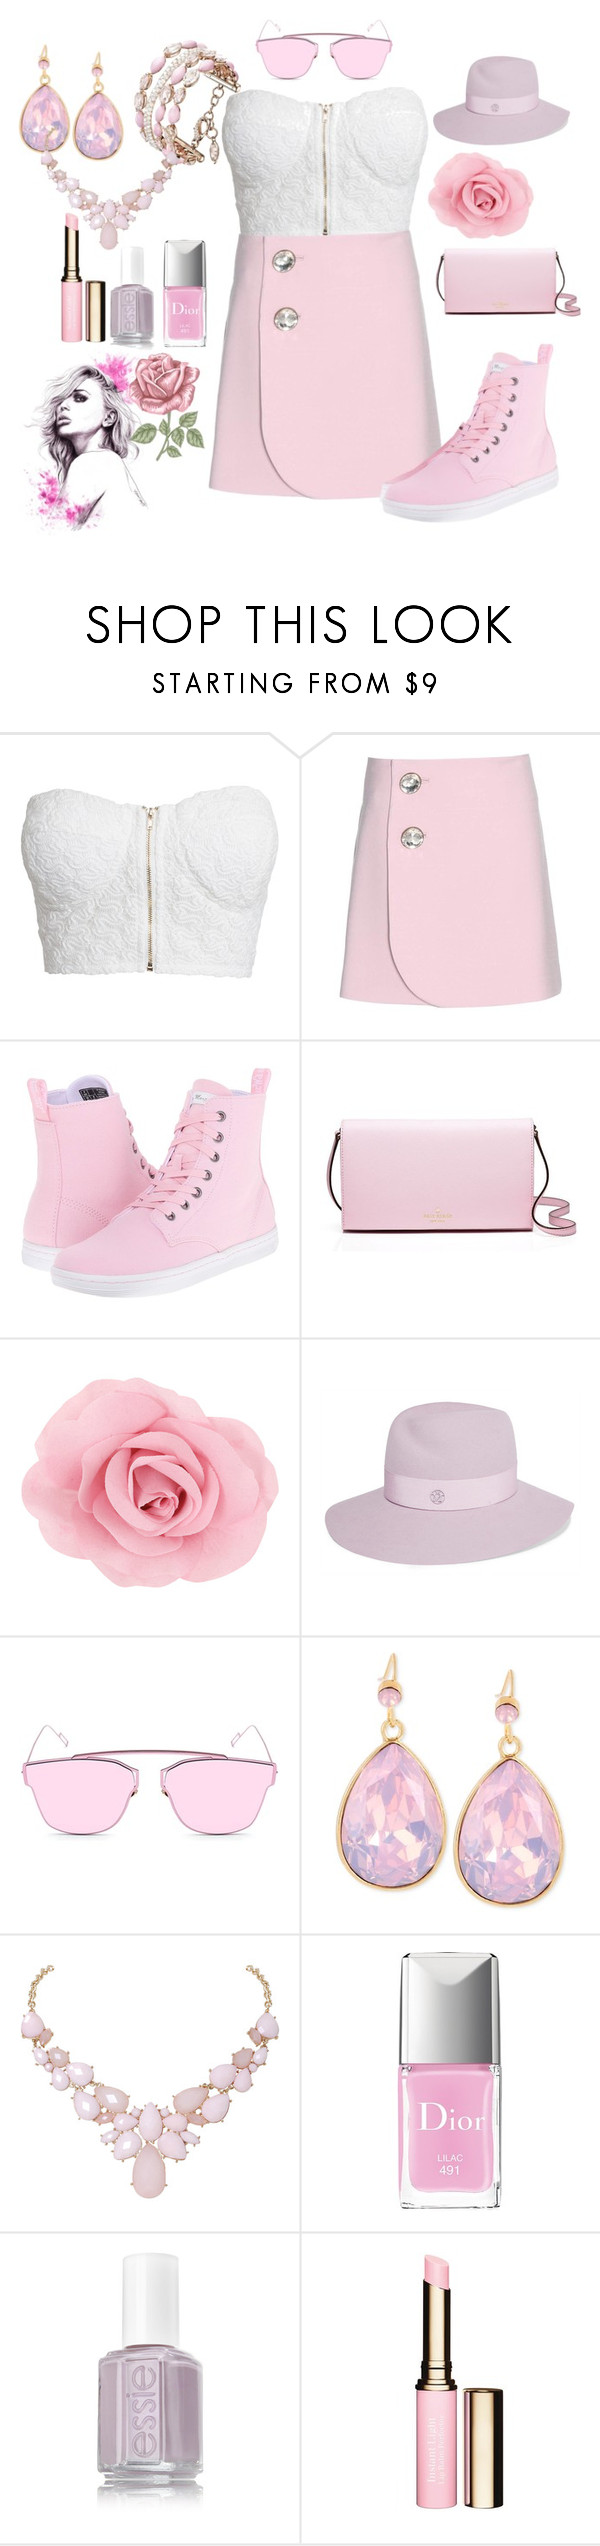 """""""Rose Petals (Pink & white)"""" by moniquedawson09123 ❤ liked on Polyvore featuring NLY Trend, Marni, Dr. Martens, Kate Spade, Maison Michel, de Grisogono, INC International Concepts, Humble Chic, Christian Dior and Clarins"""